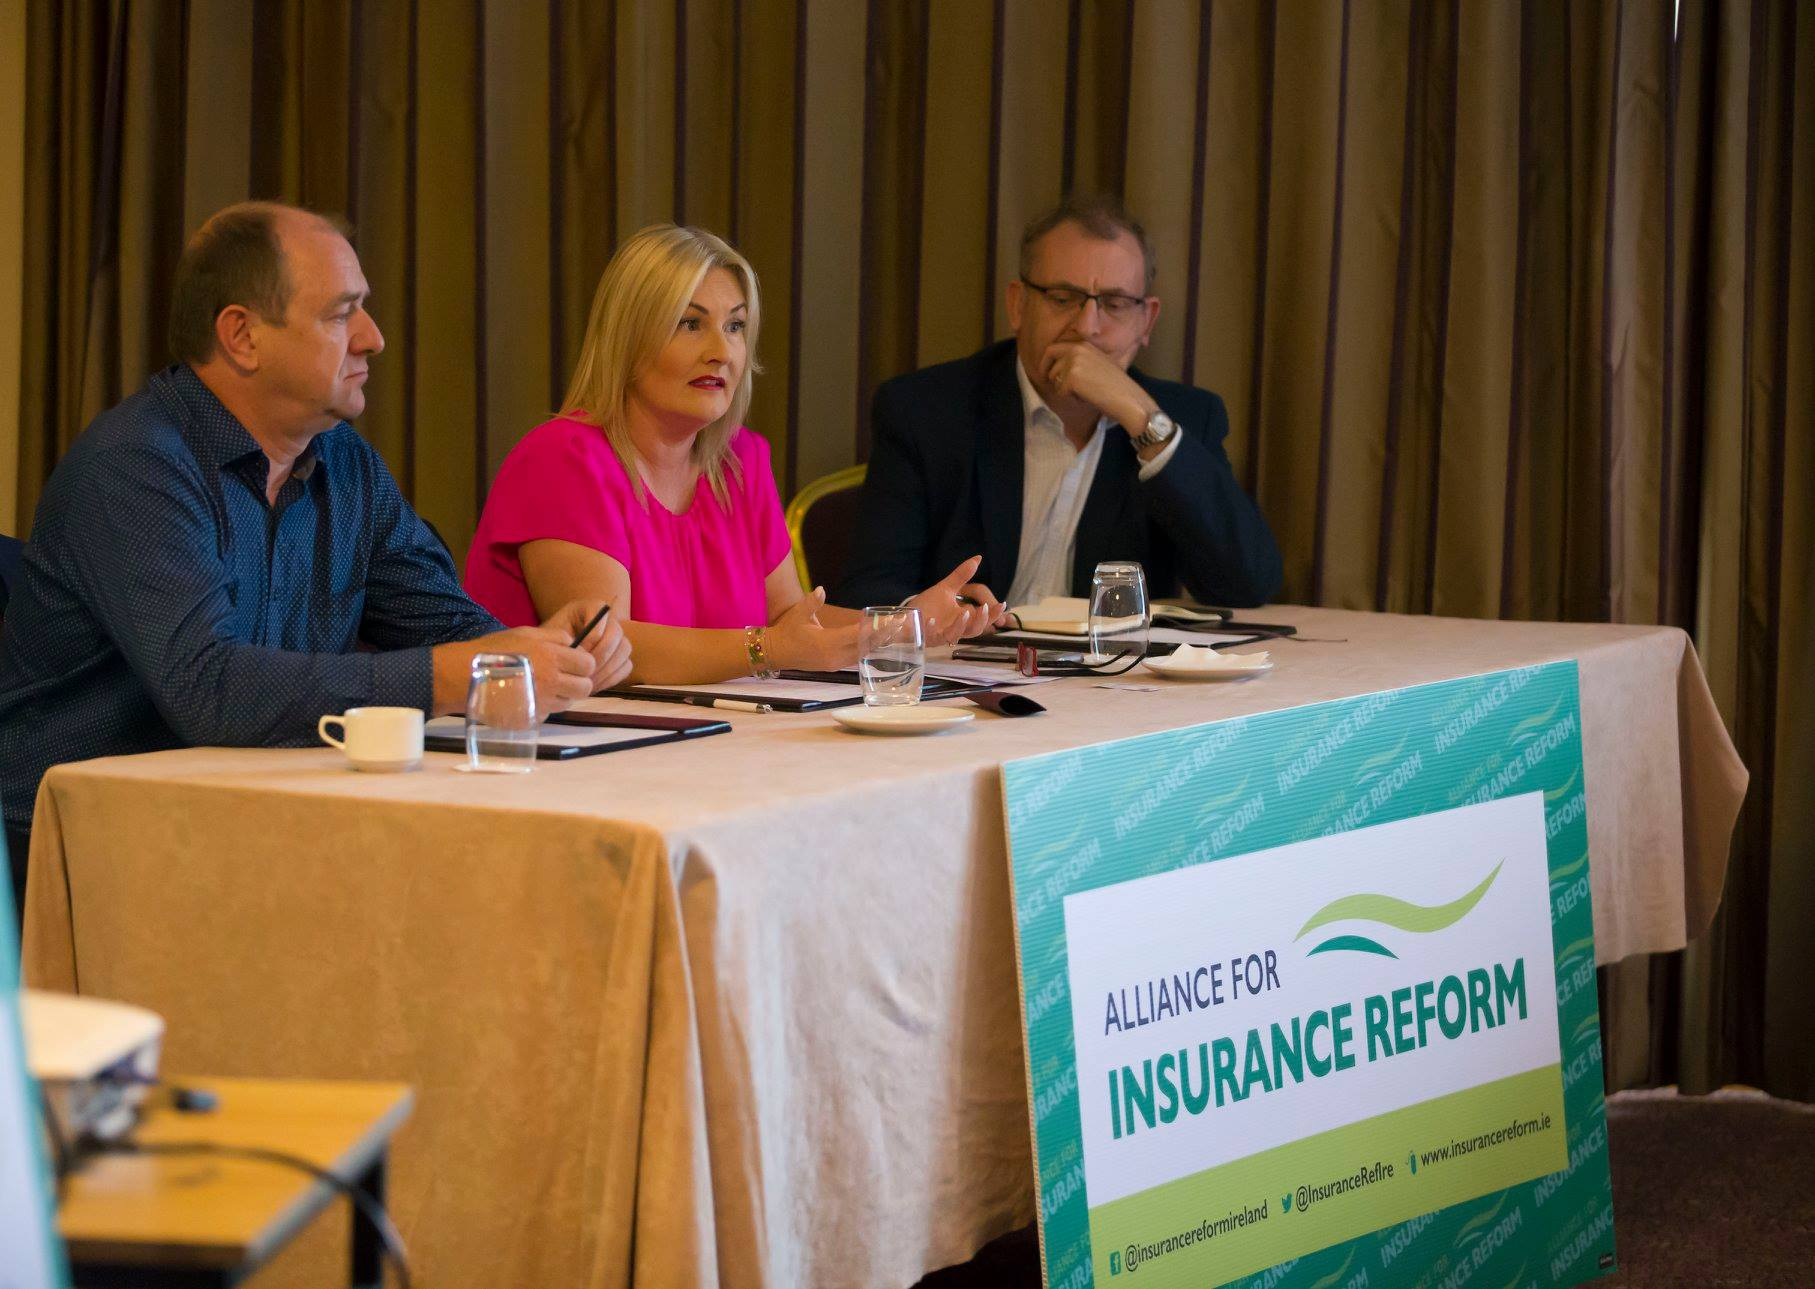 Meaningful engagement is needed from the Oireachtas on insurance reform